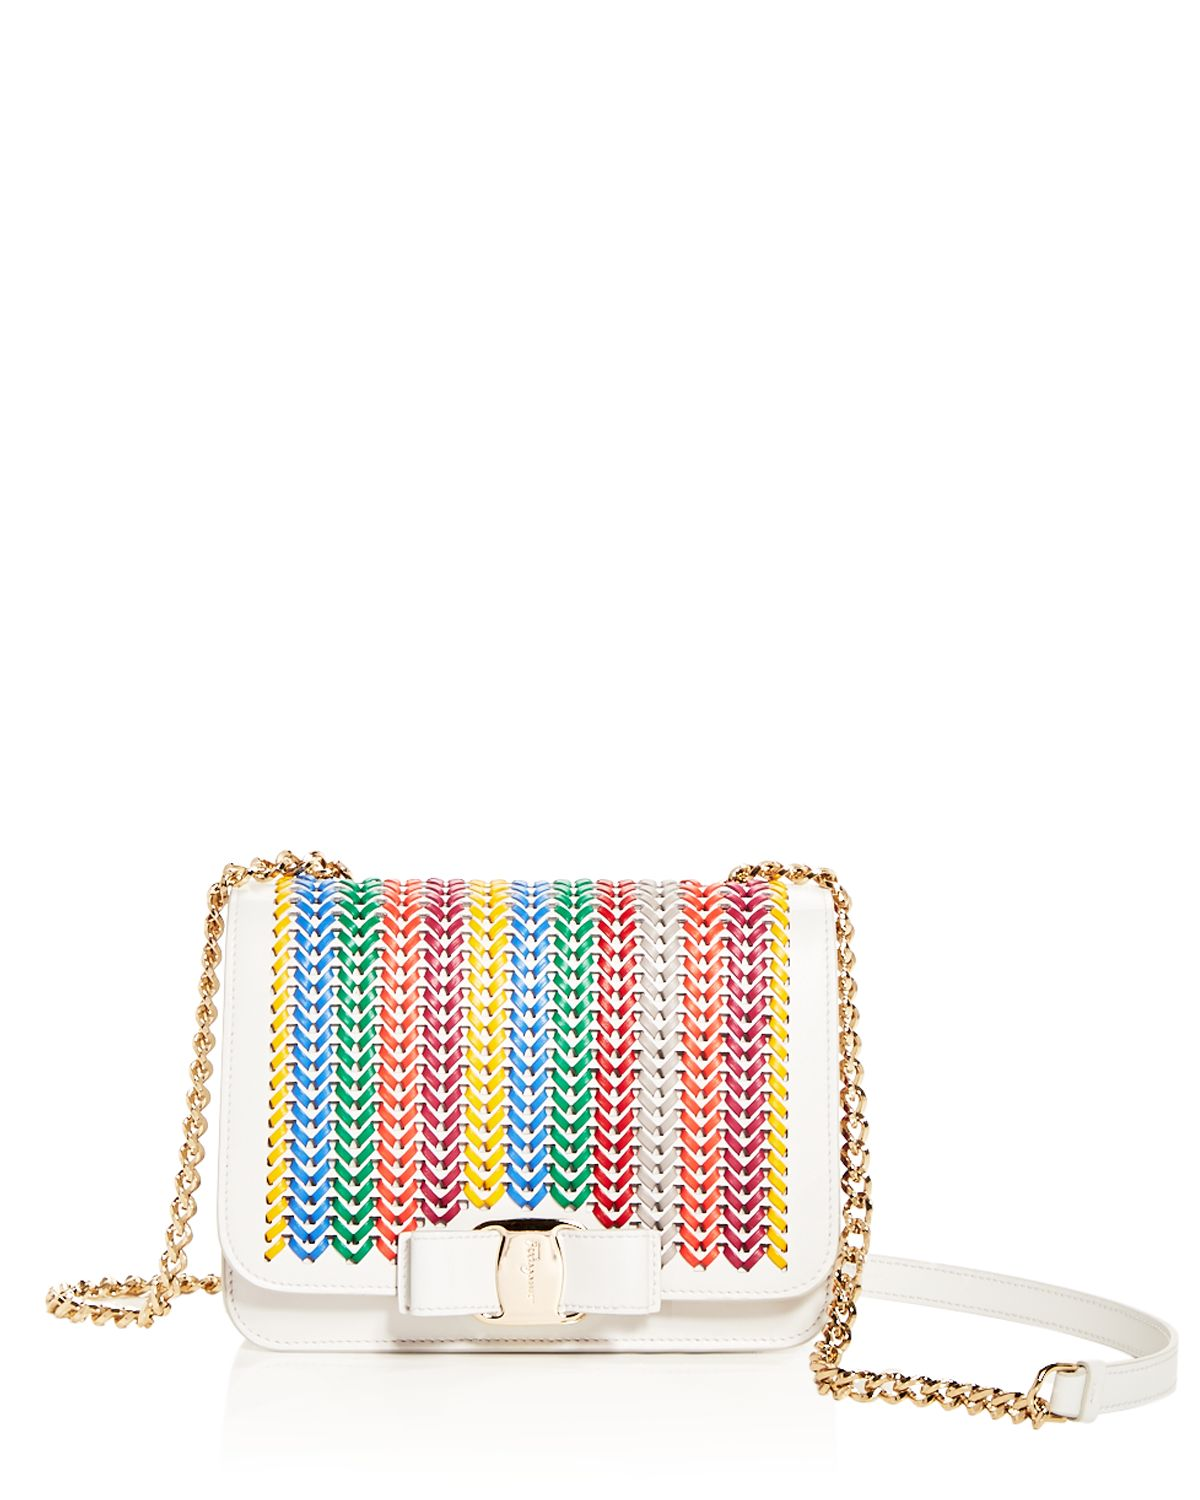 Vara Woven Rainbow Leather Shoulder Bag by Salvatore Ferragamo